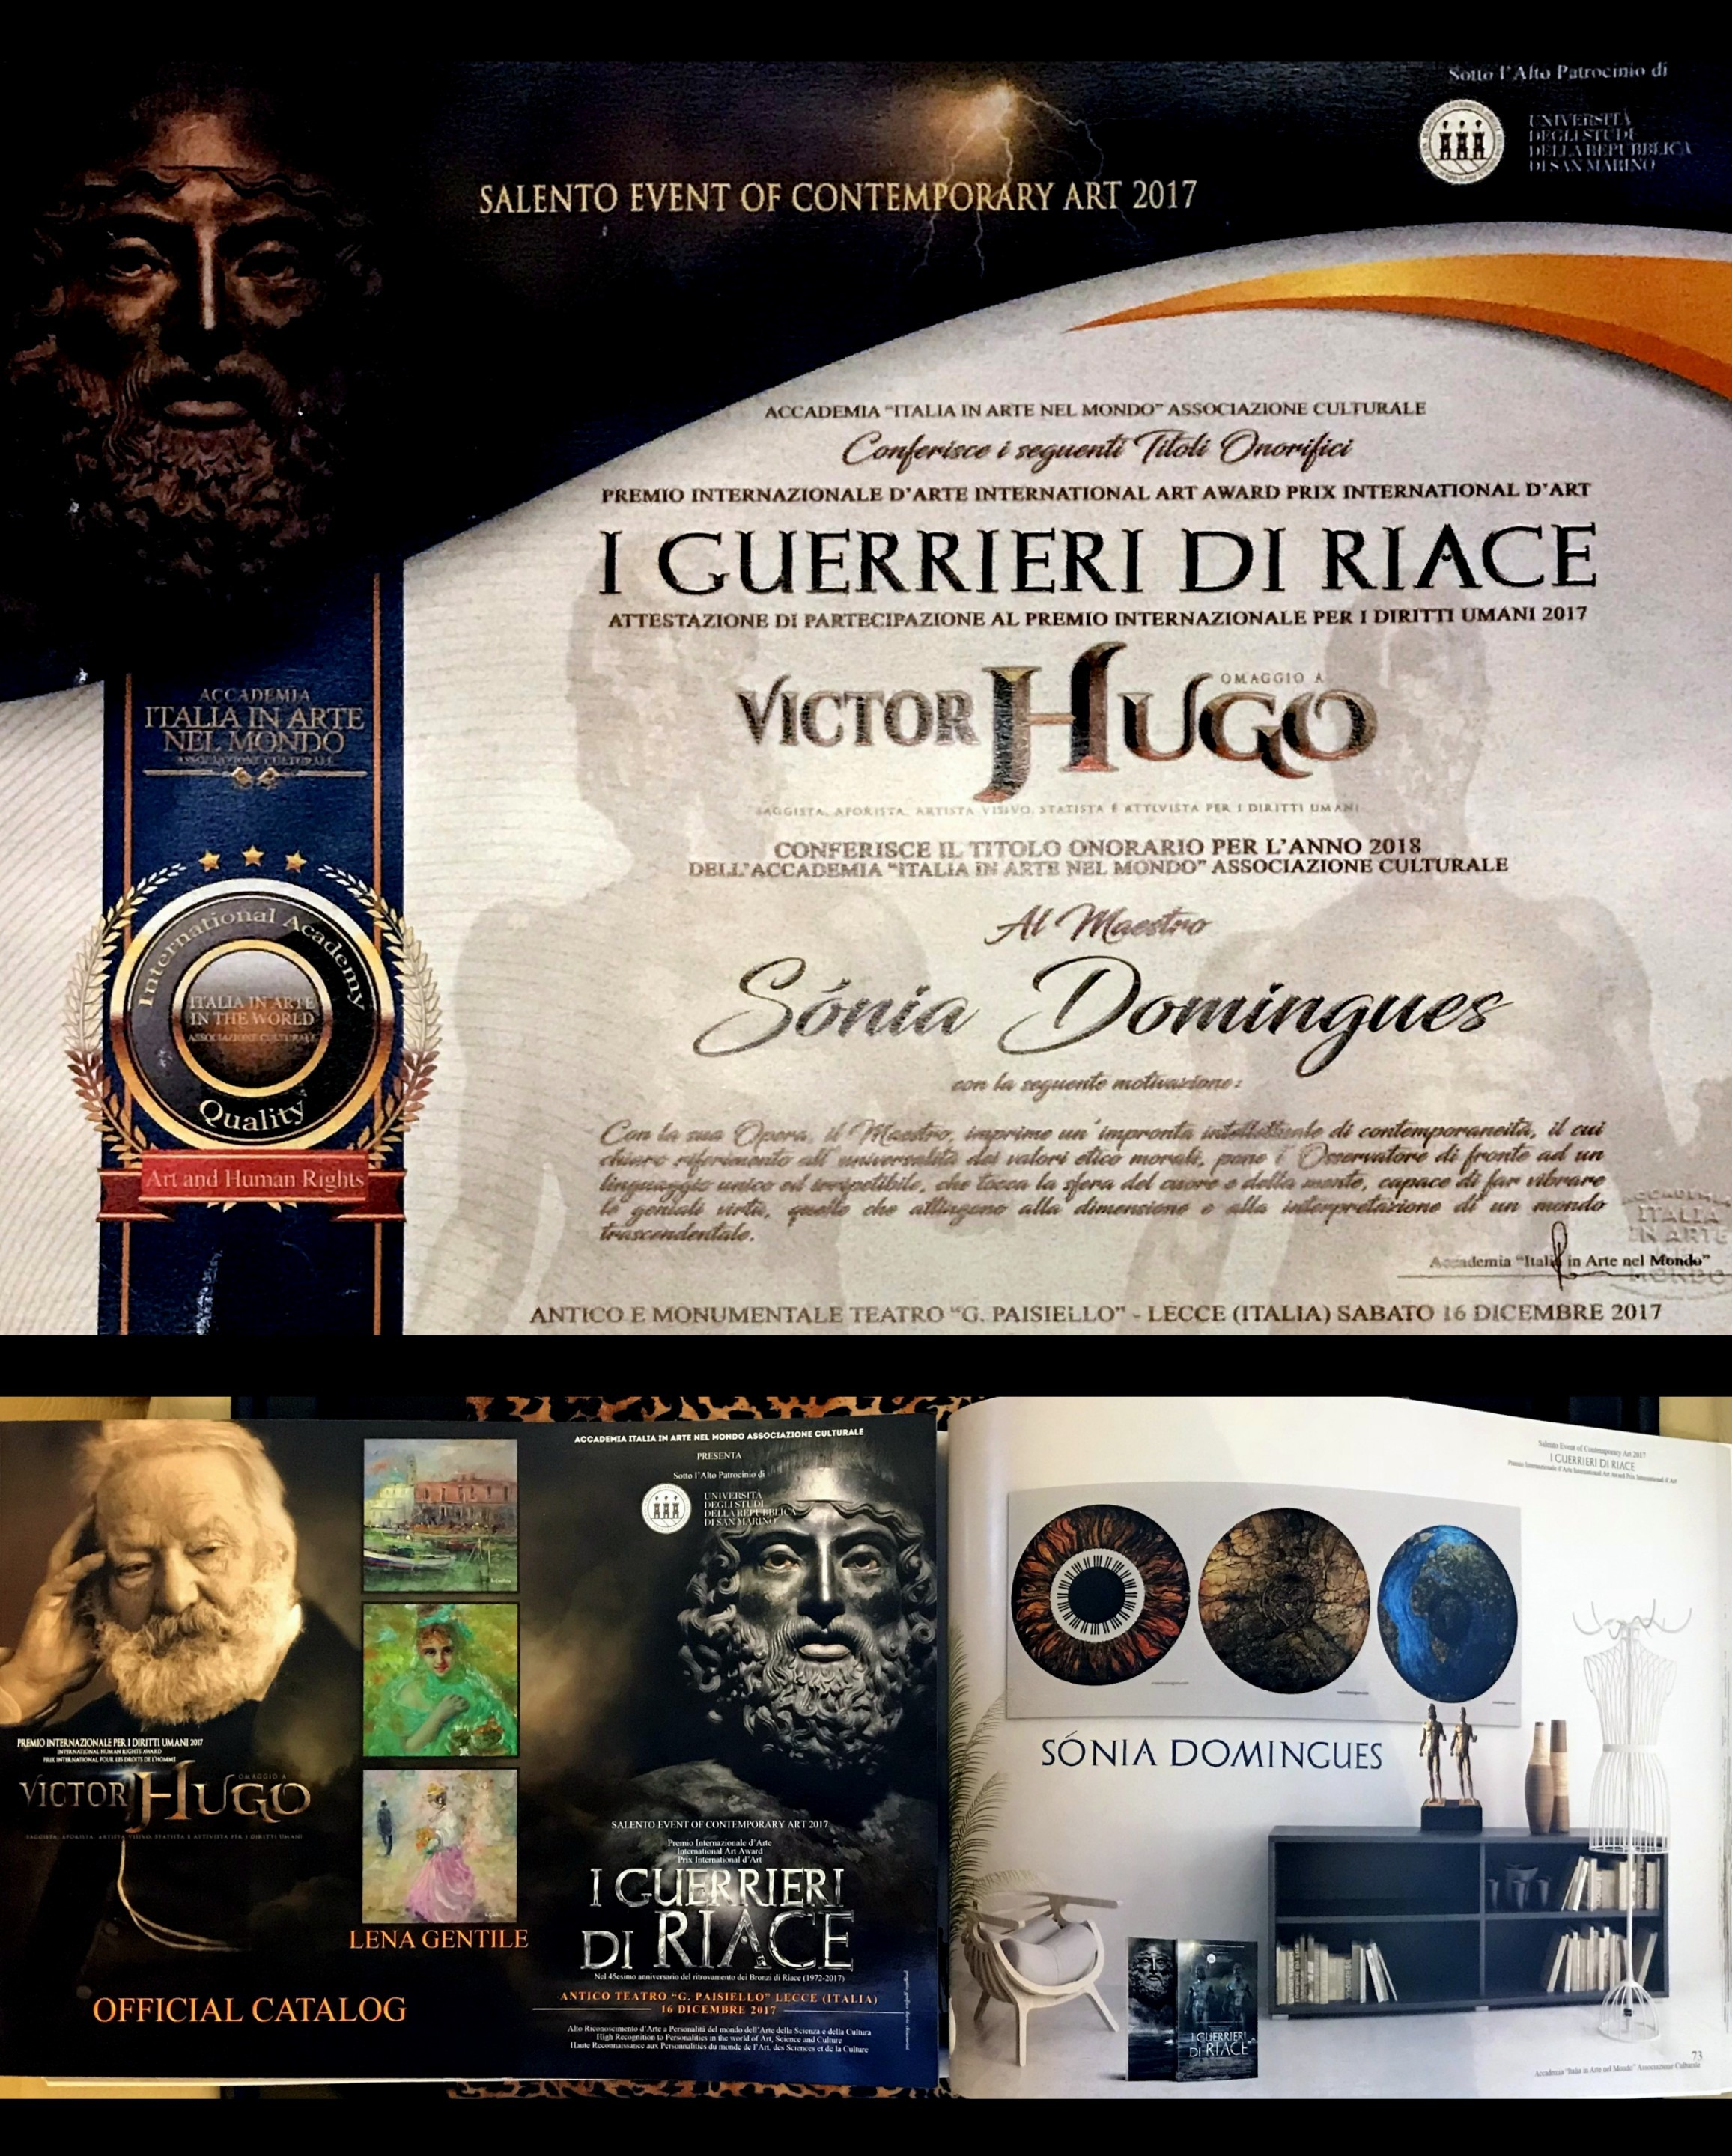 Warriors of Riace Award and Catalog to the Master Sonia Domingues